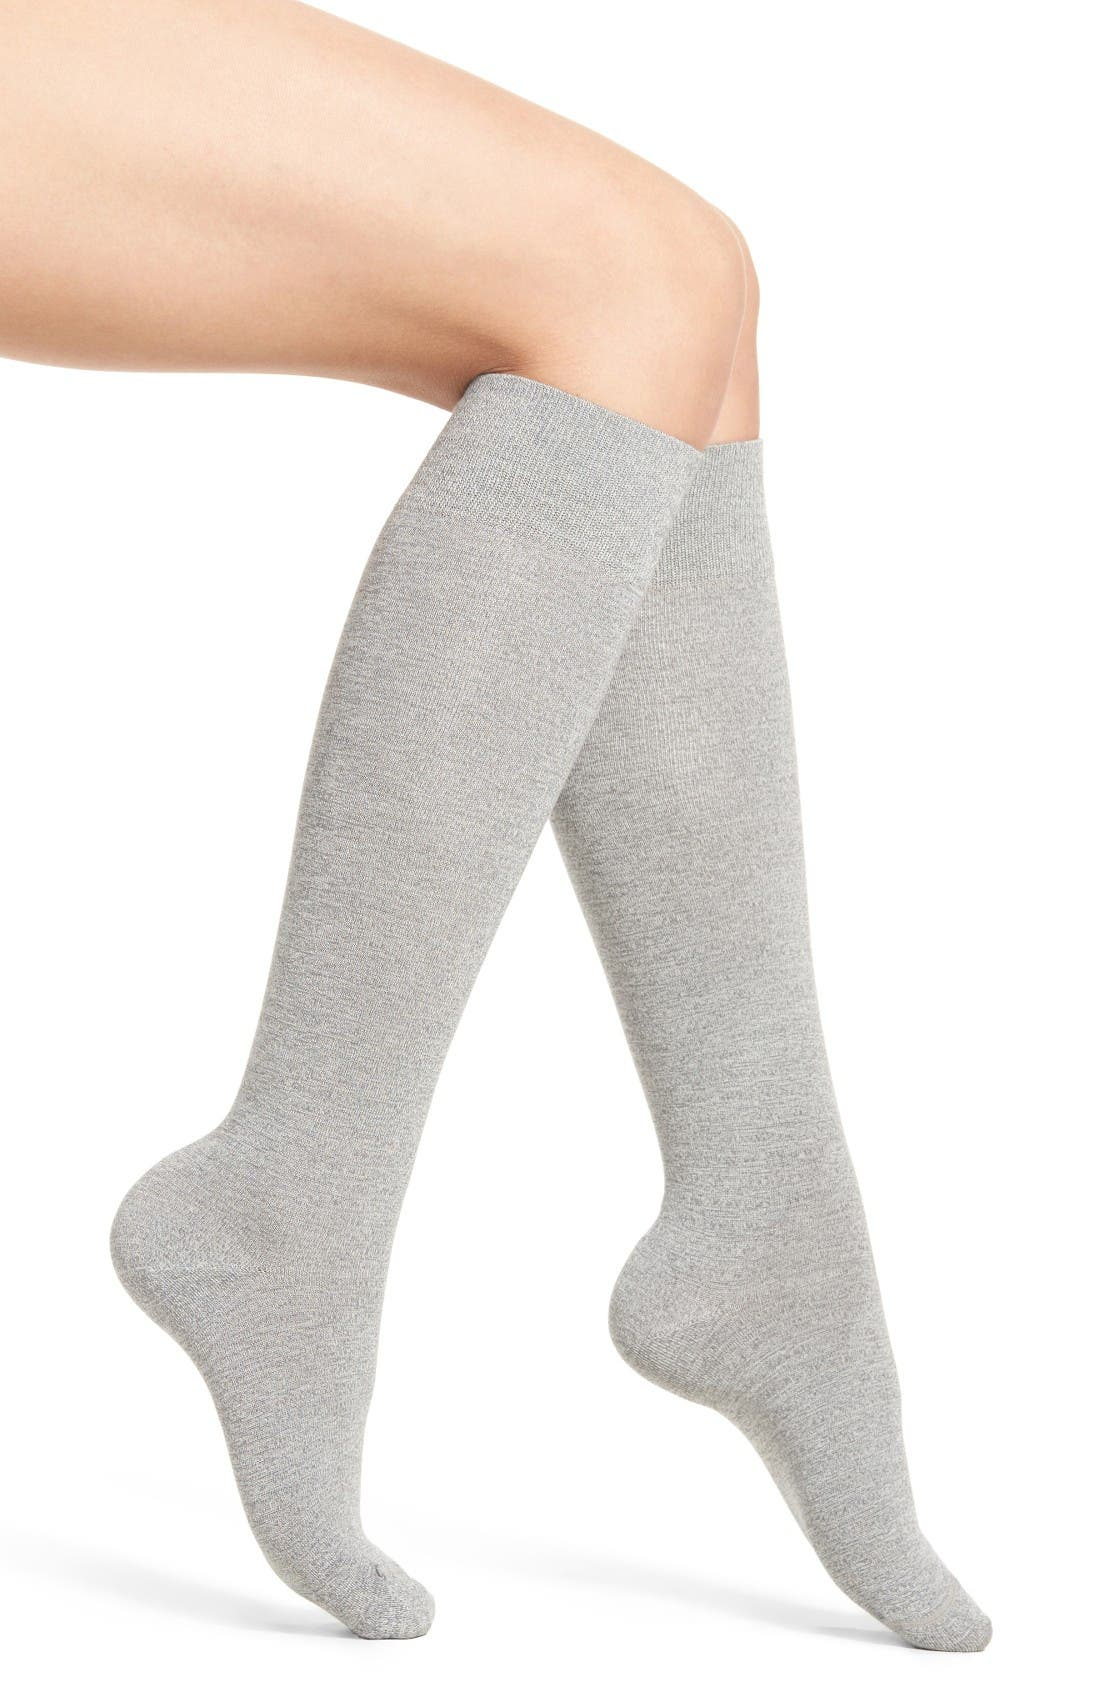 Alternate Image 1 Selected - Nordstrom Knee High Socks (3 for $18)